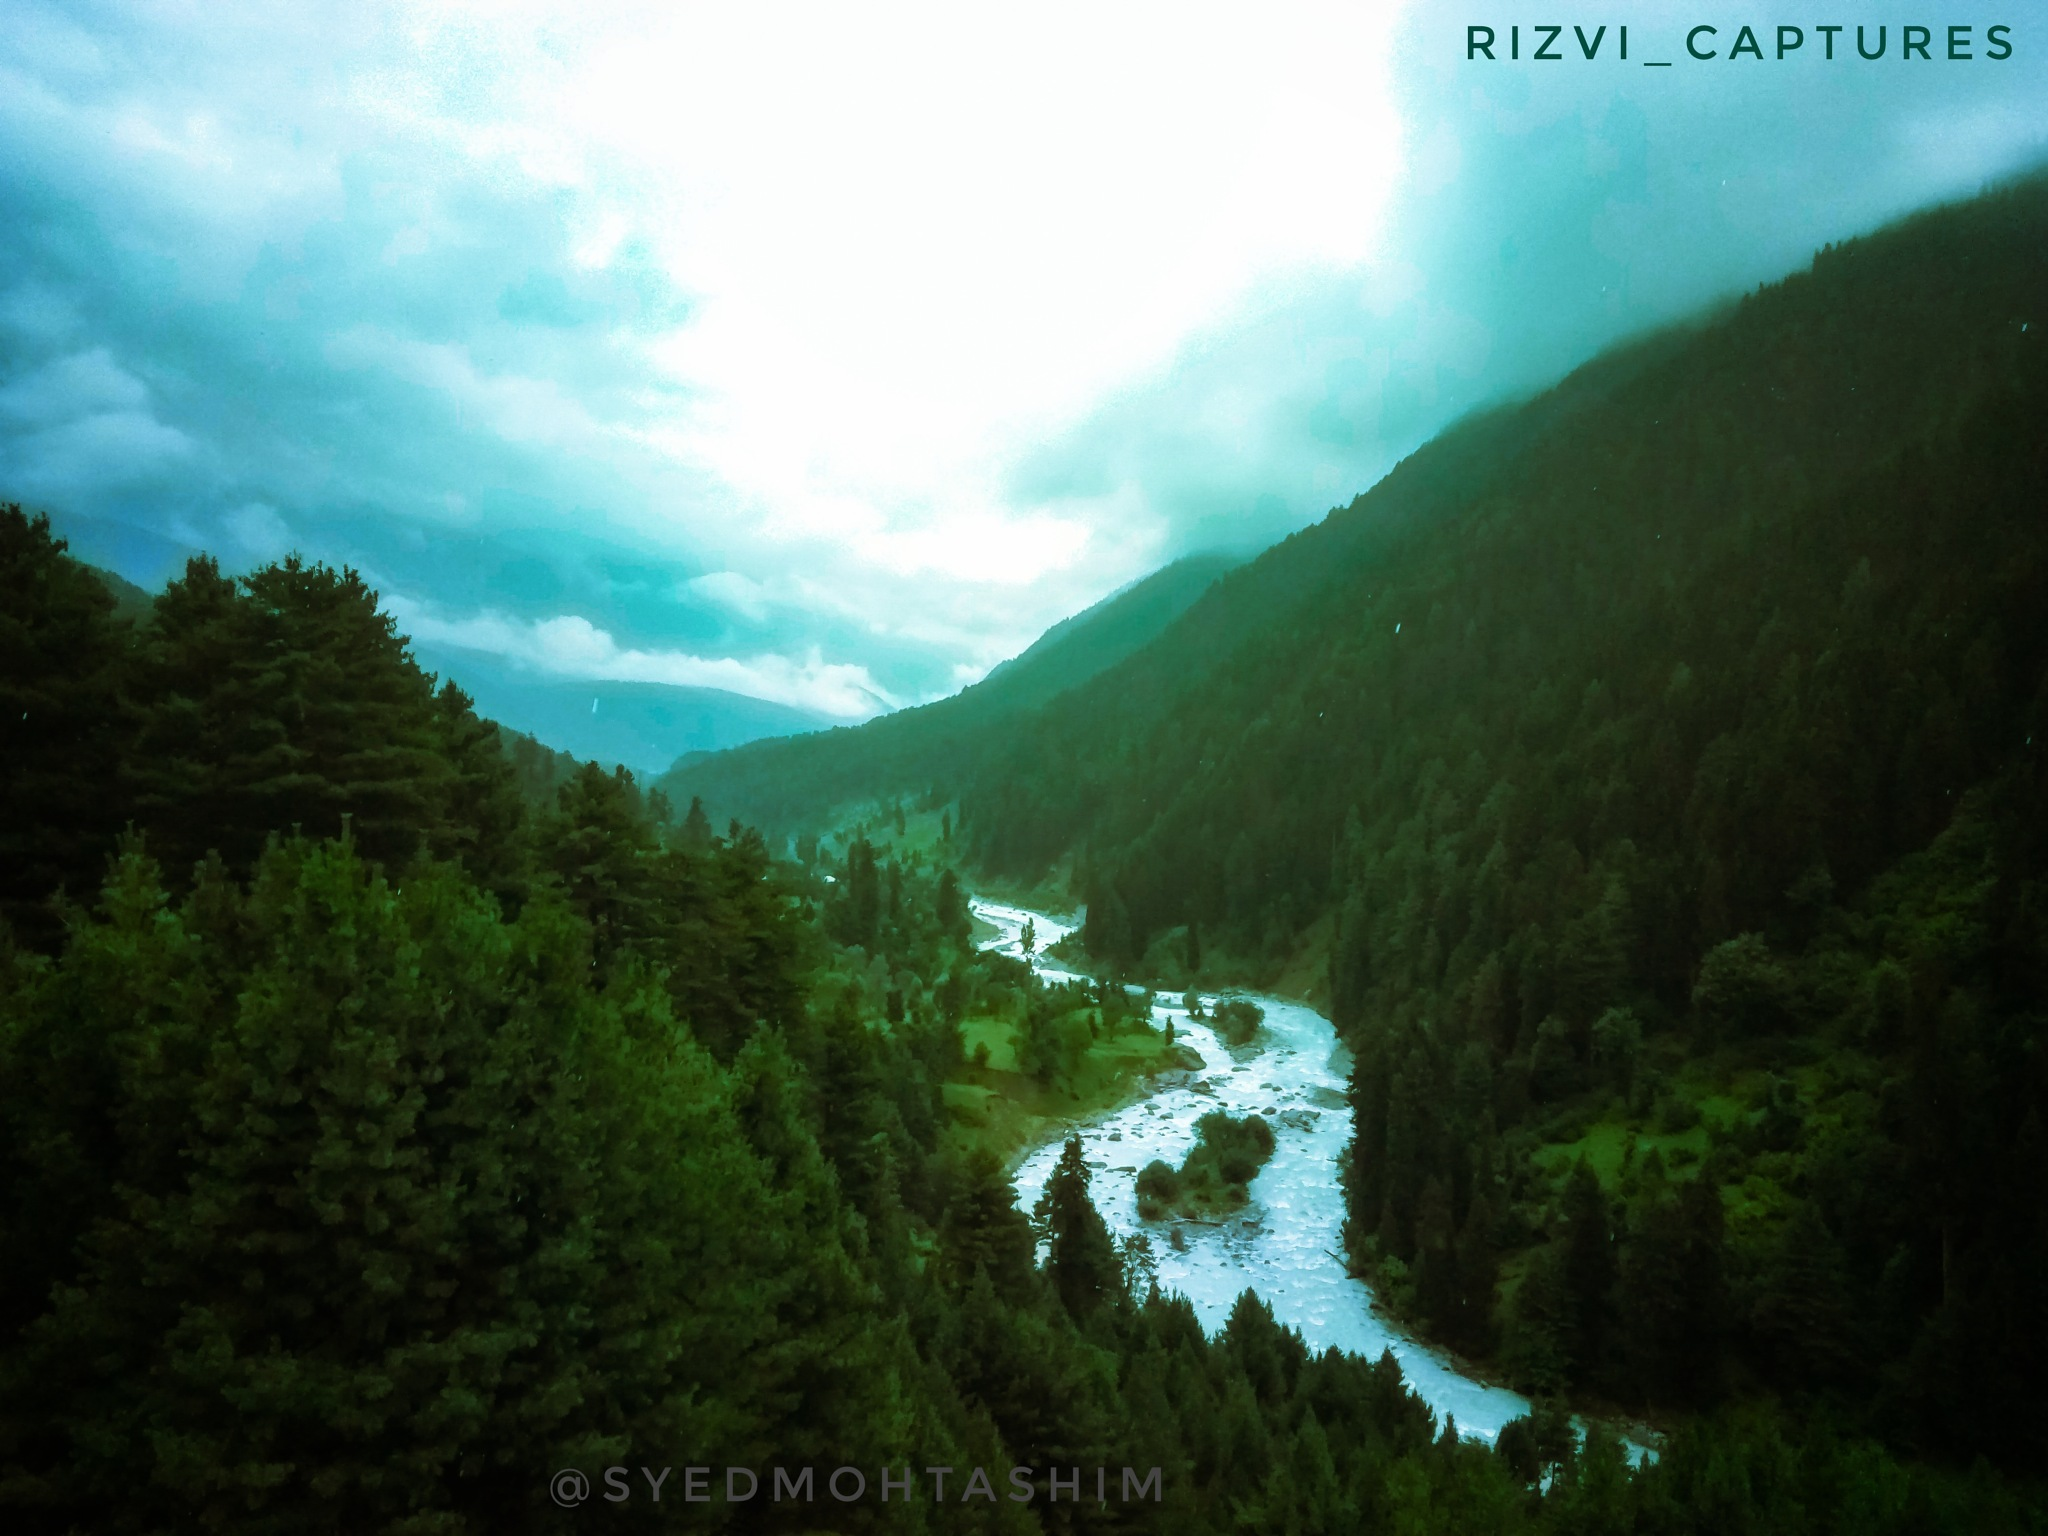 travel with nature. by rizvi_captures